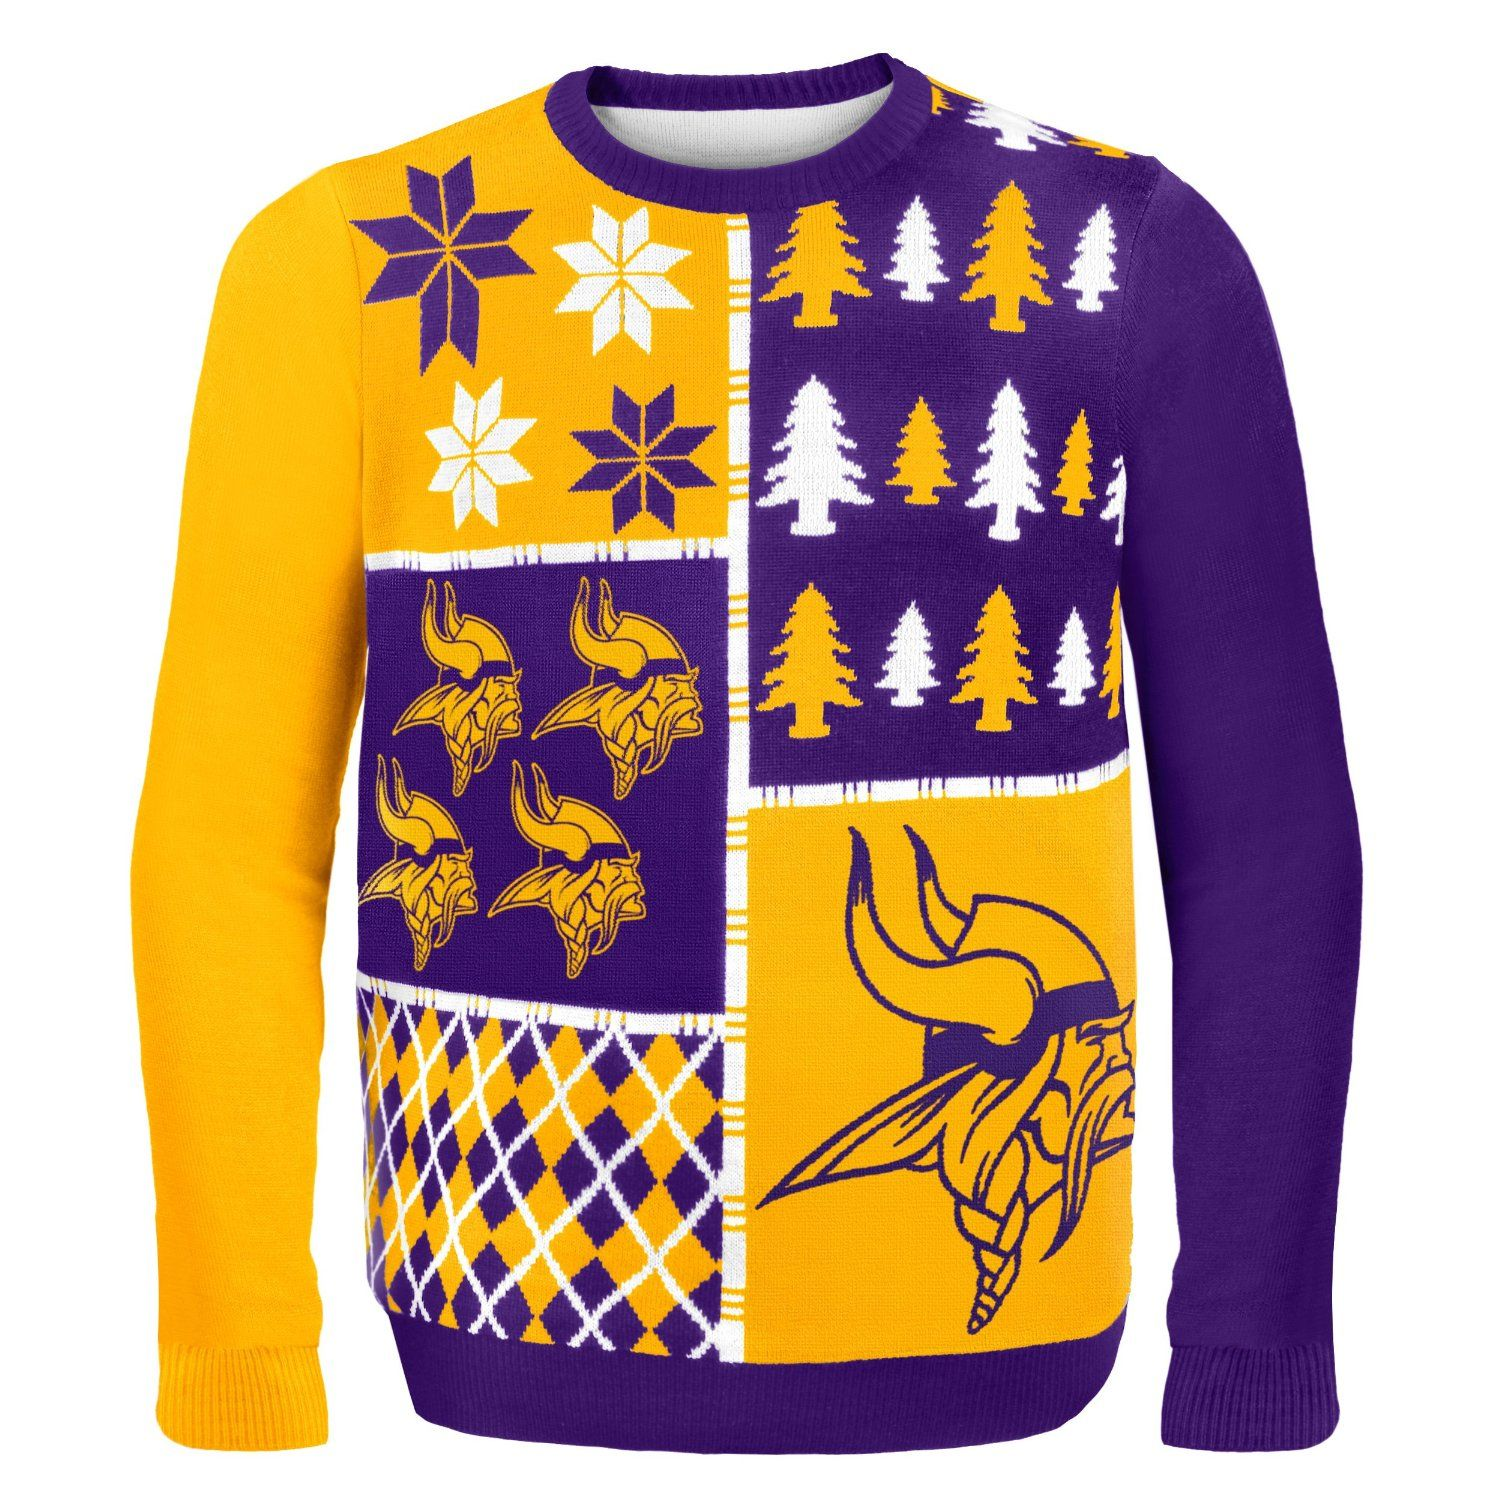 NFL Busy Block Ugly Sweater – Minnesota Vikings | NFL-NFC North Ugly ...